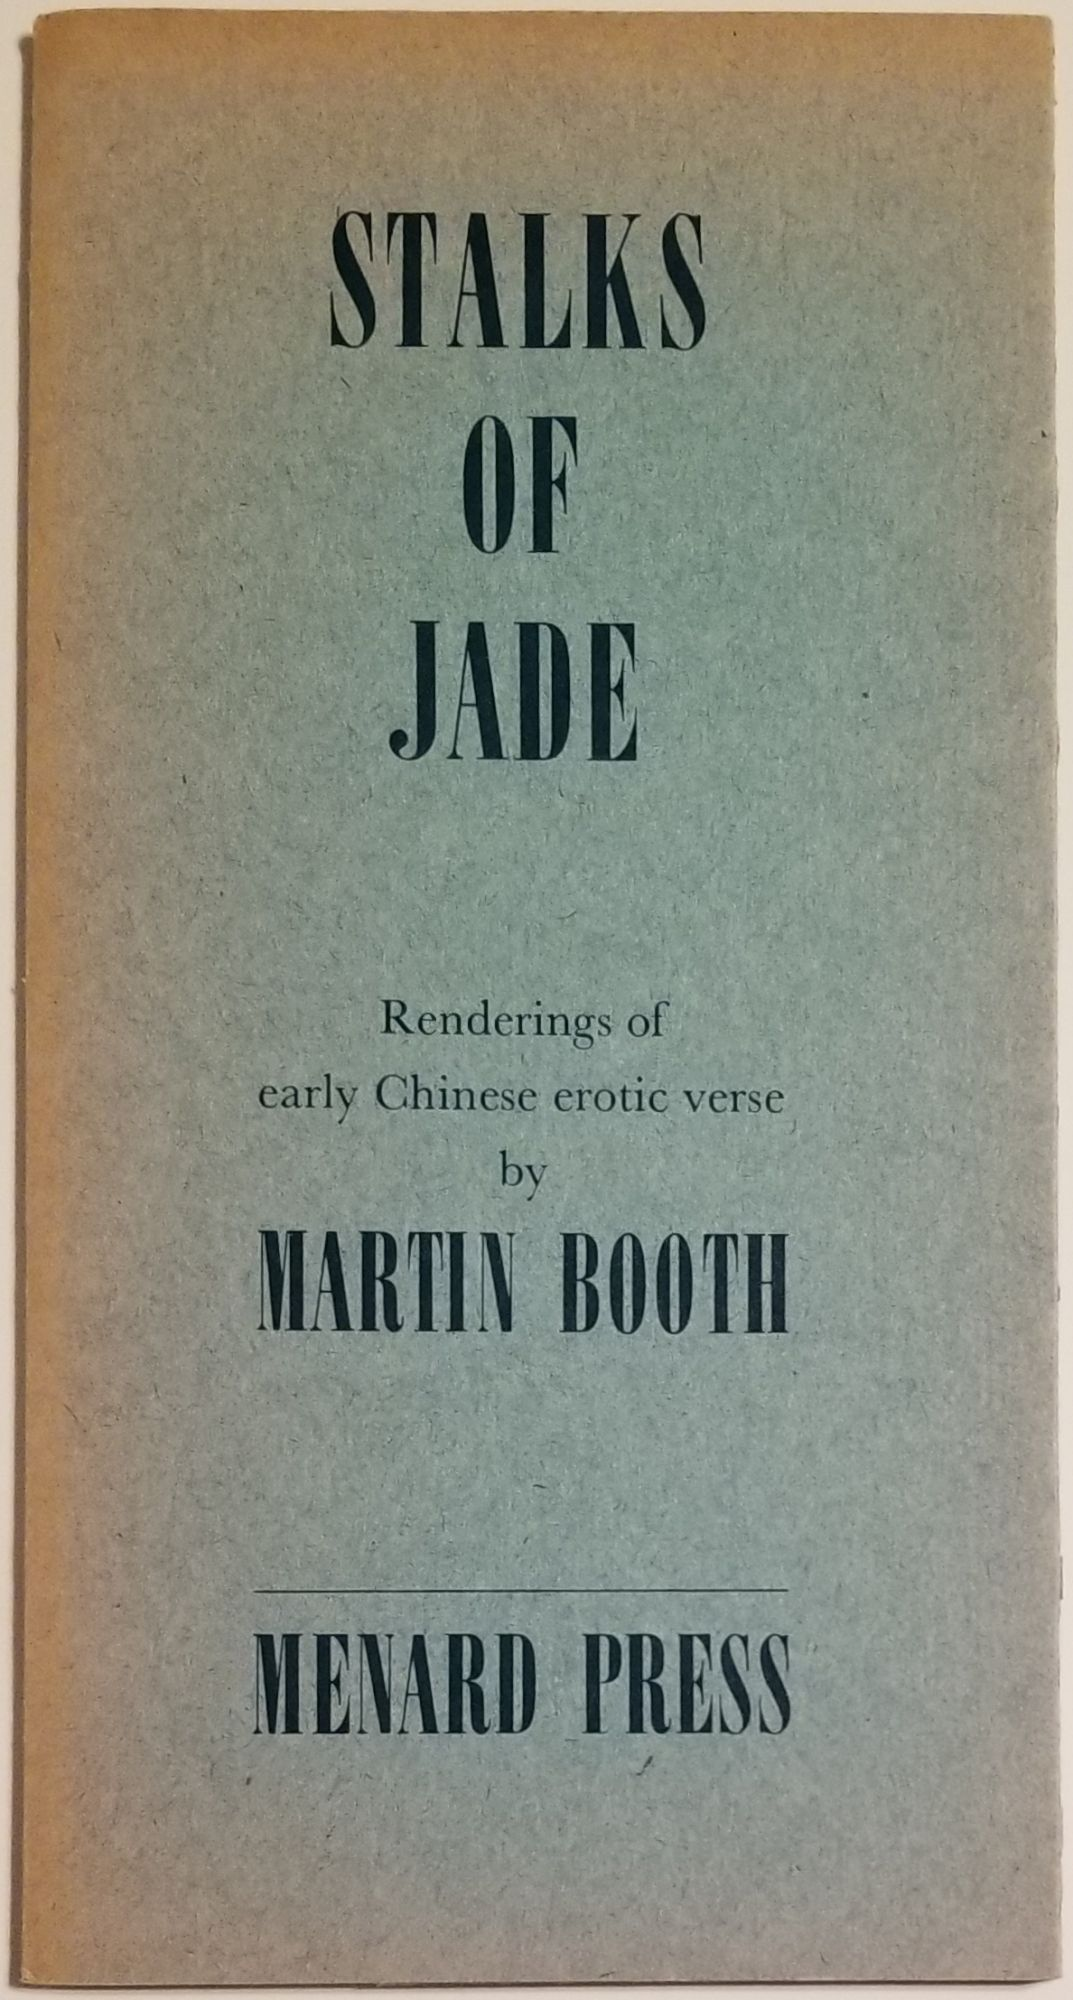 STALKS OF JADE. Renderings of early Chinese erotic verse. Martin Booth.